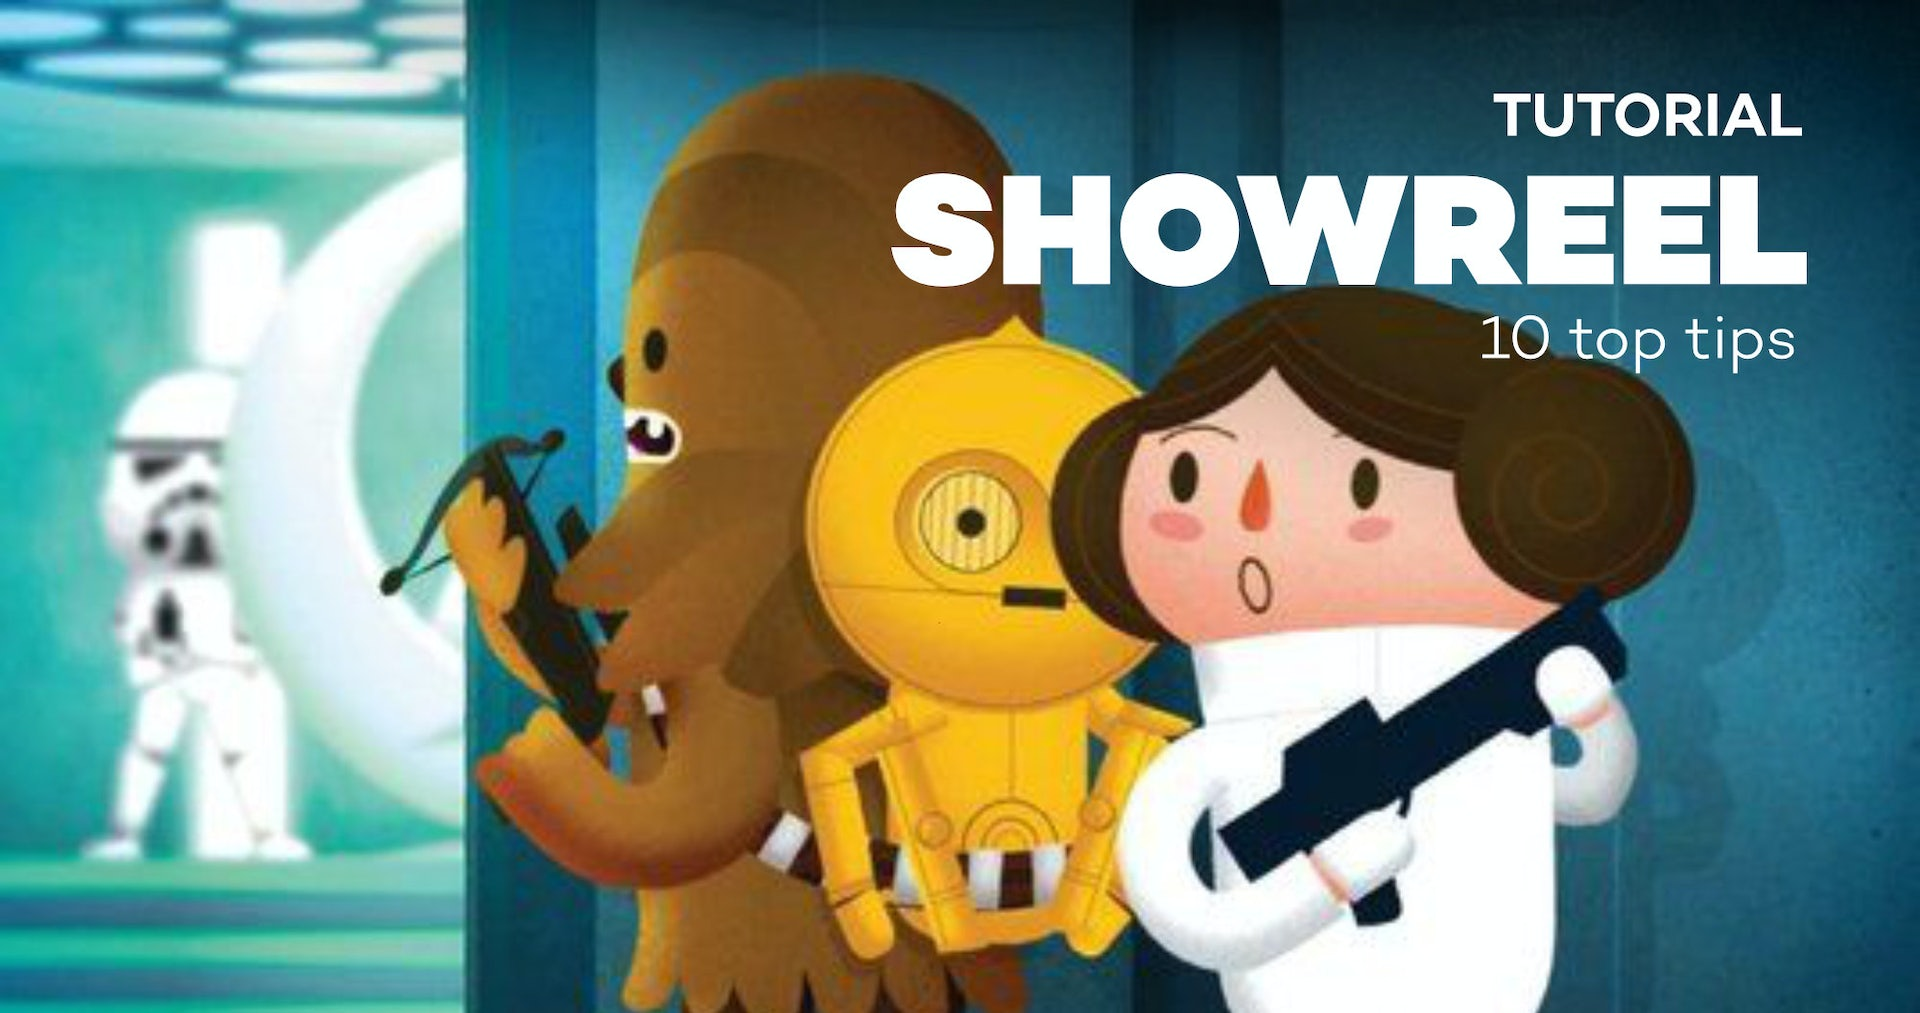 Build the perfect showreel: 10 top tips